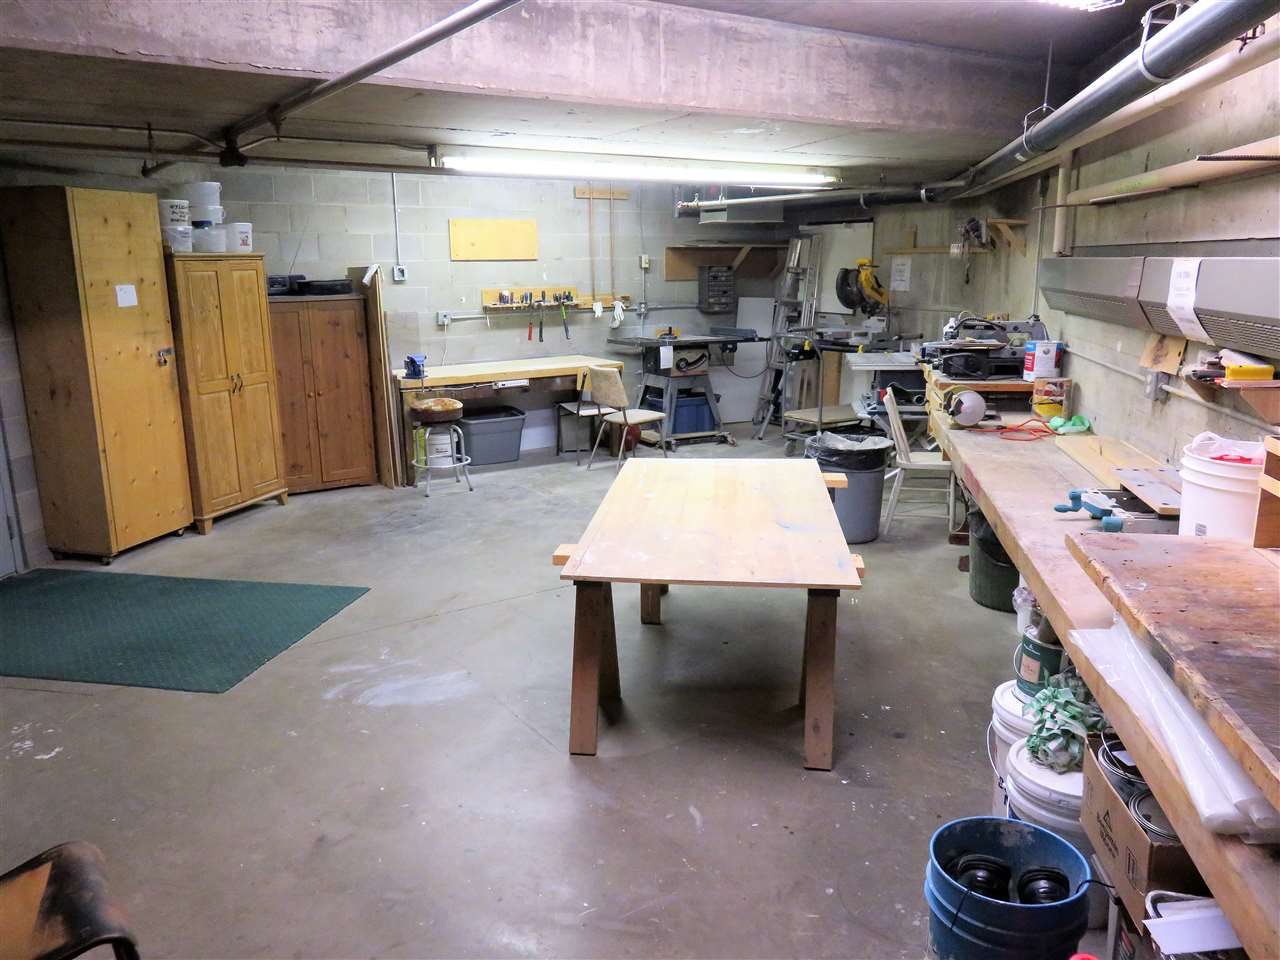 Here is the workshop located in the underground parking area! Free for you all to use with cleanup afterwards! :)